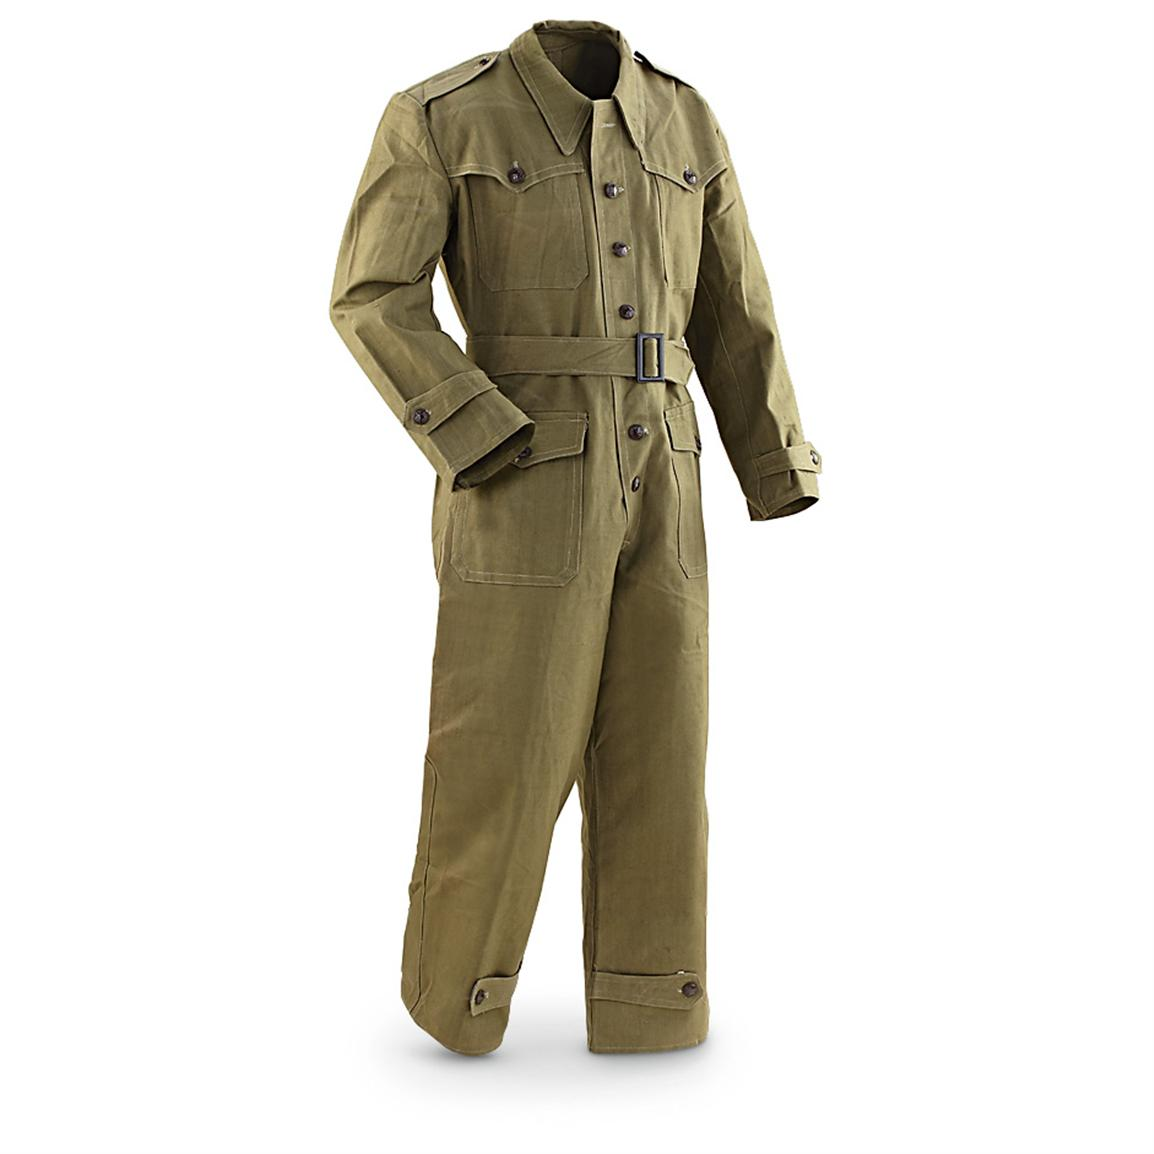 Used Bulgarian Military Surplus Heavy-duty Cotton Coveralls, Olive Drab